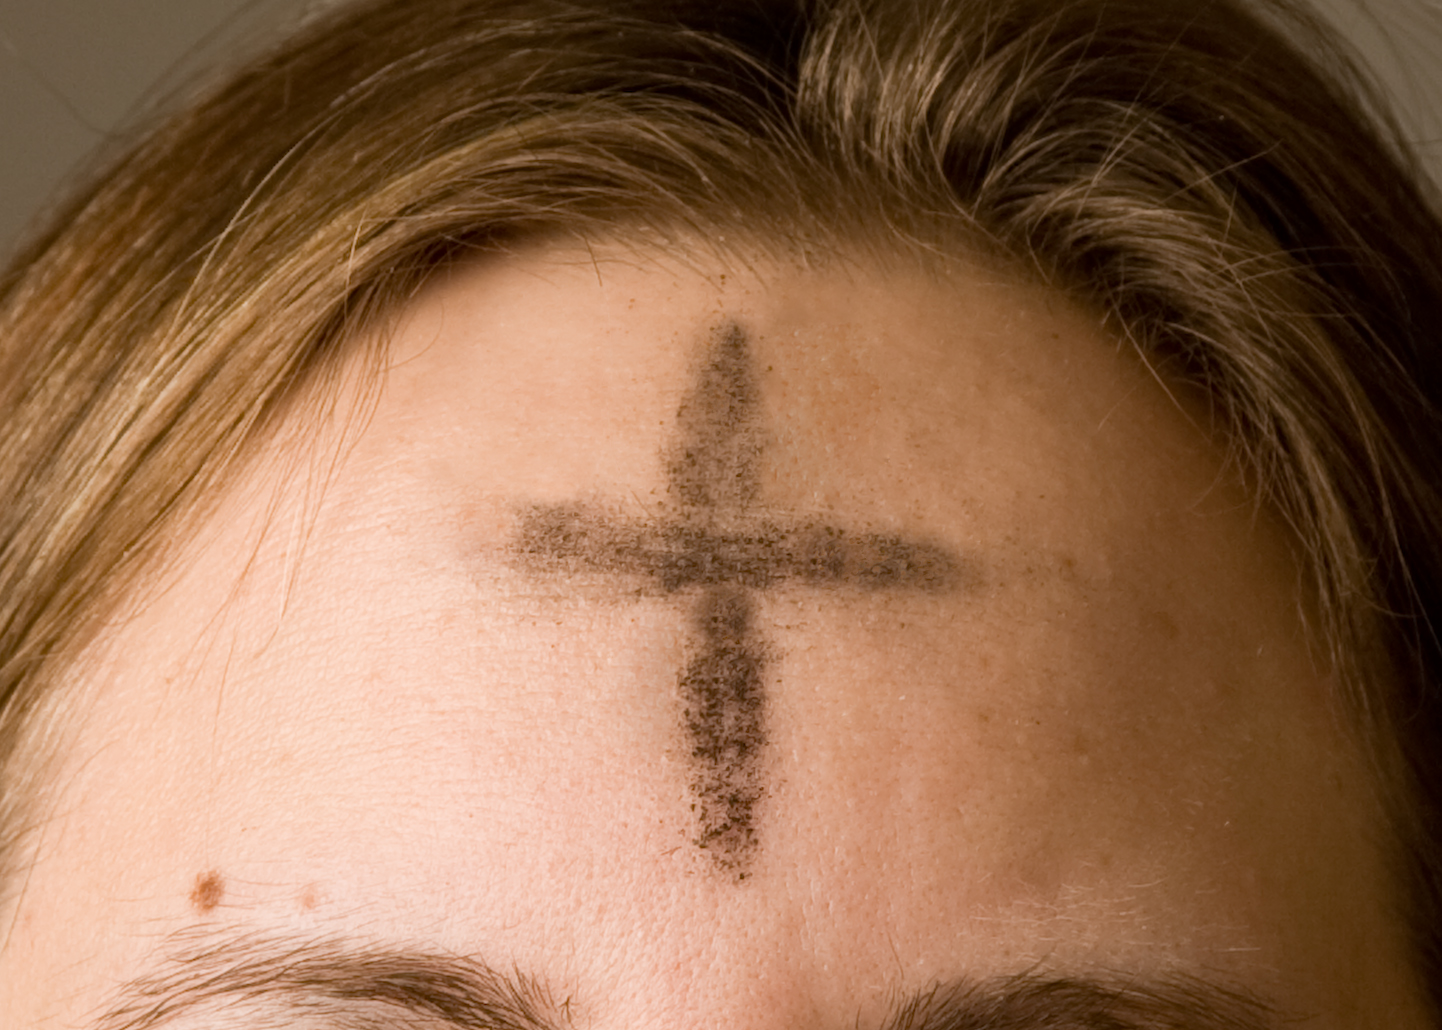 Have a Prayerful Lent of Transformation in Christ